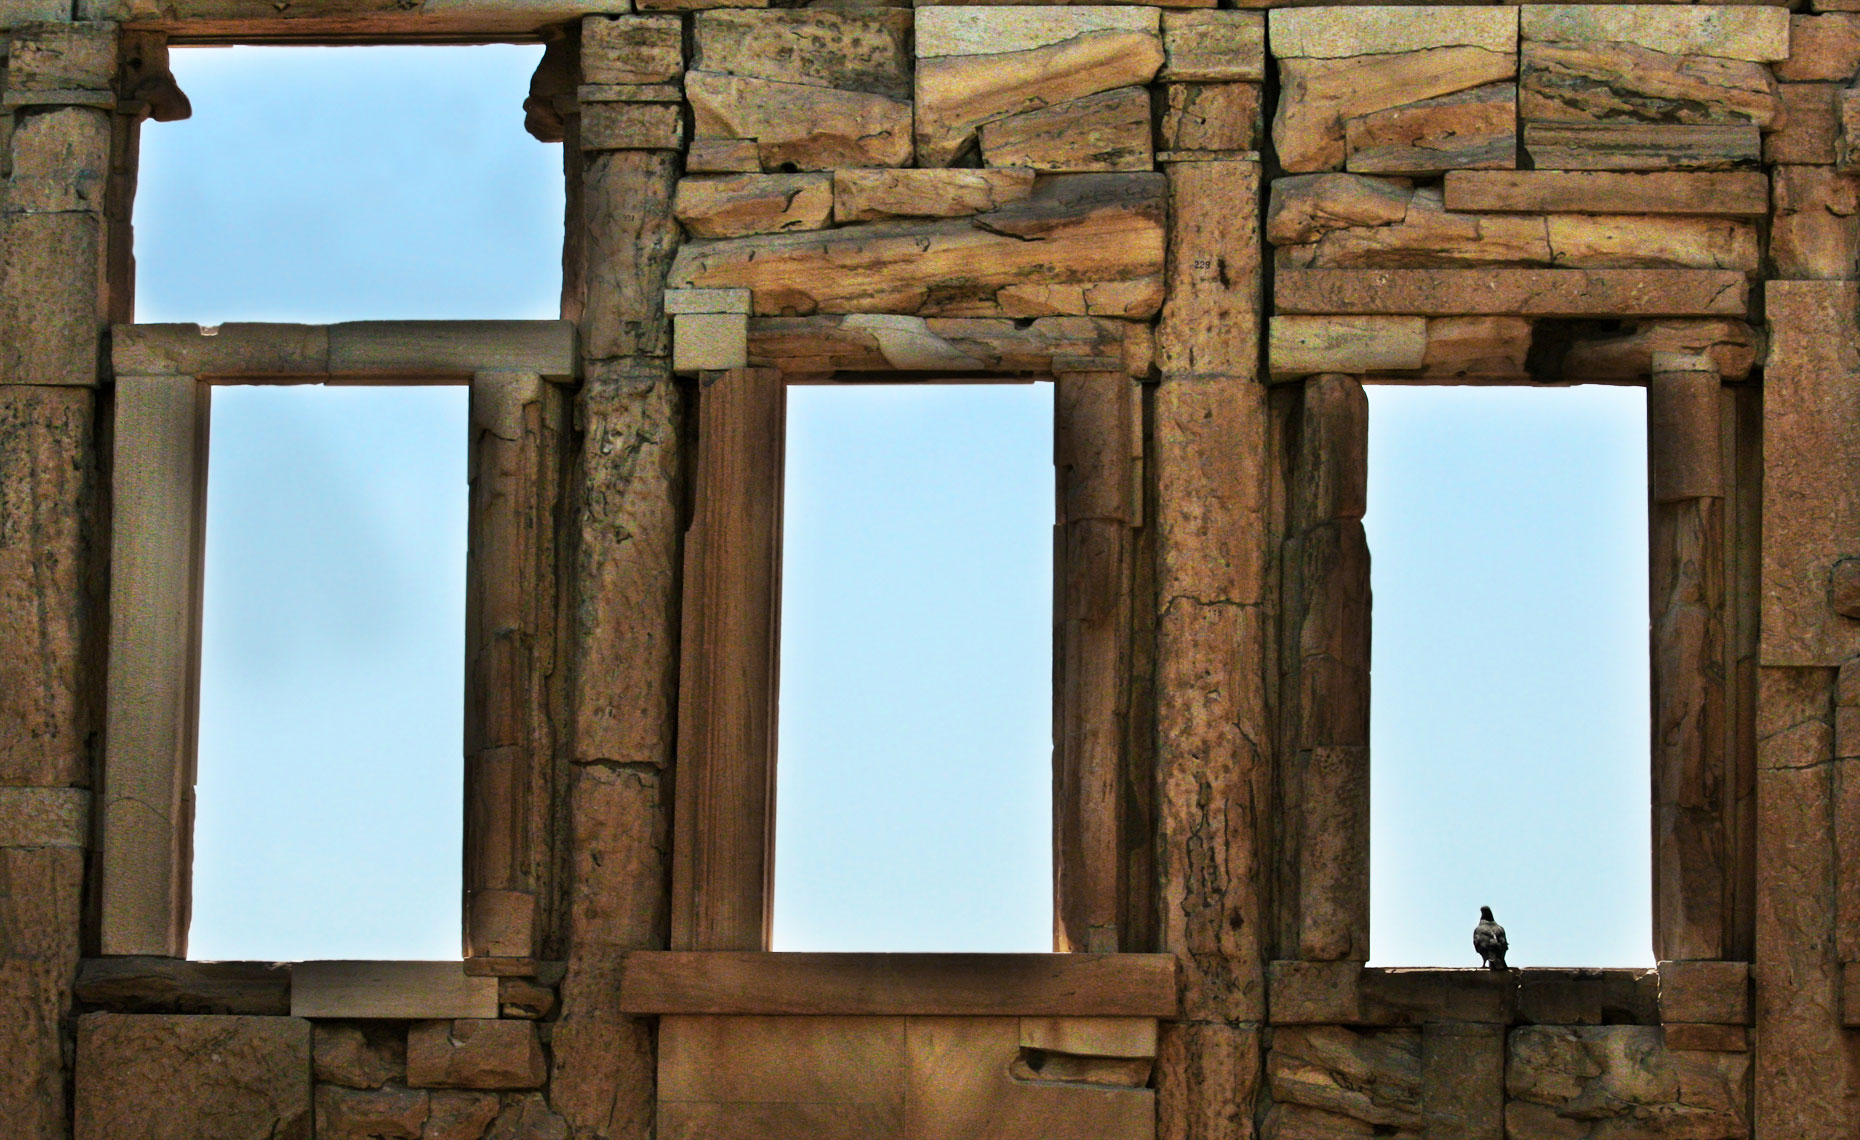 bird-in-window-at-acropolis.jpg